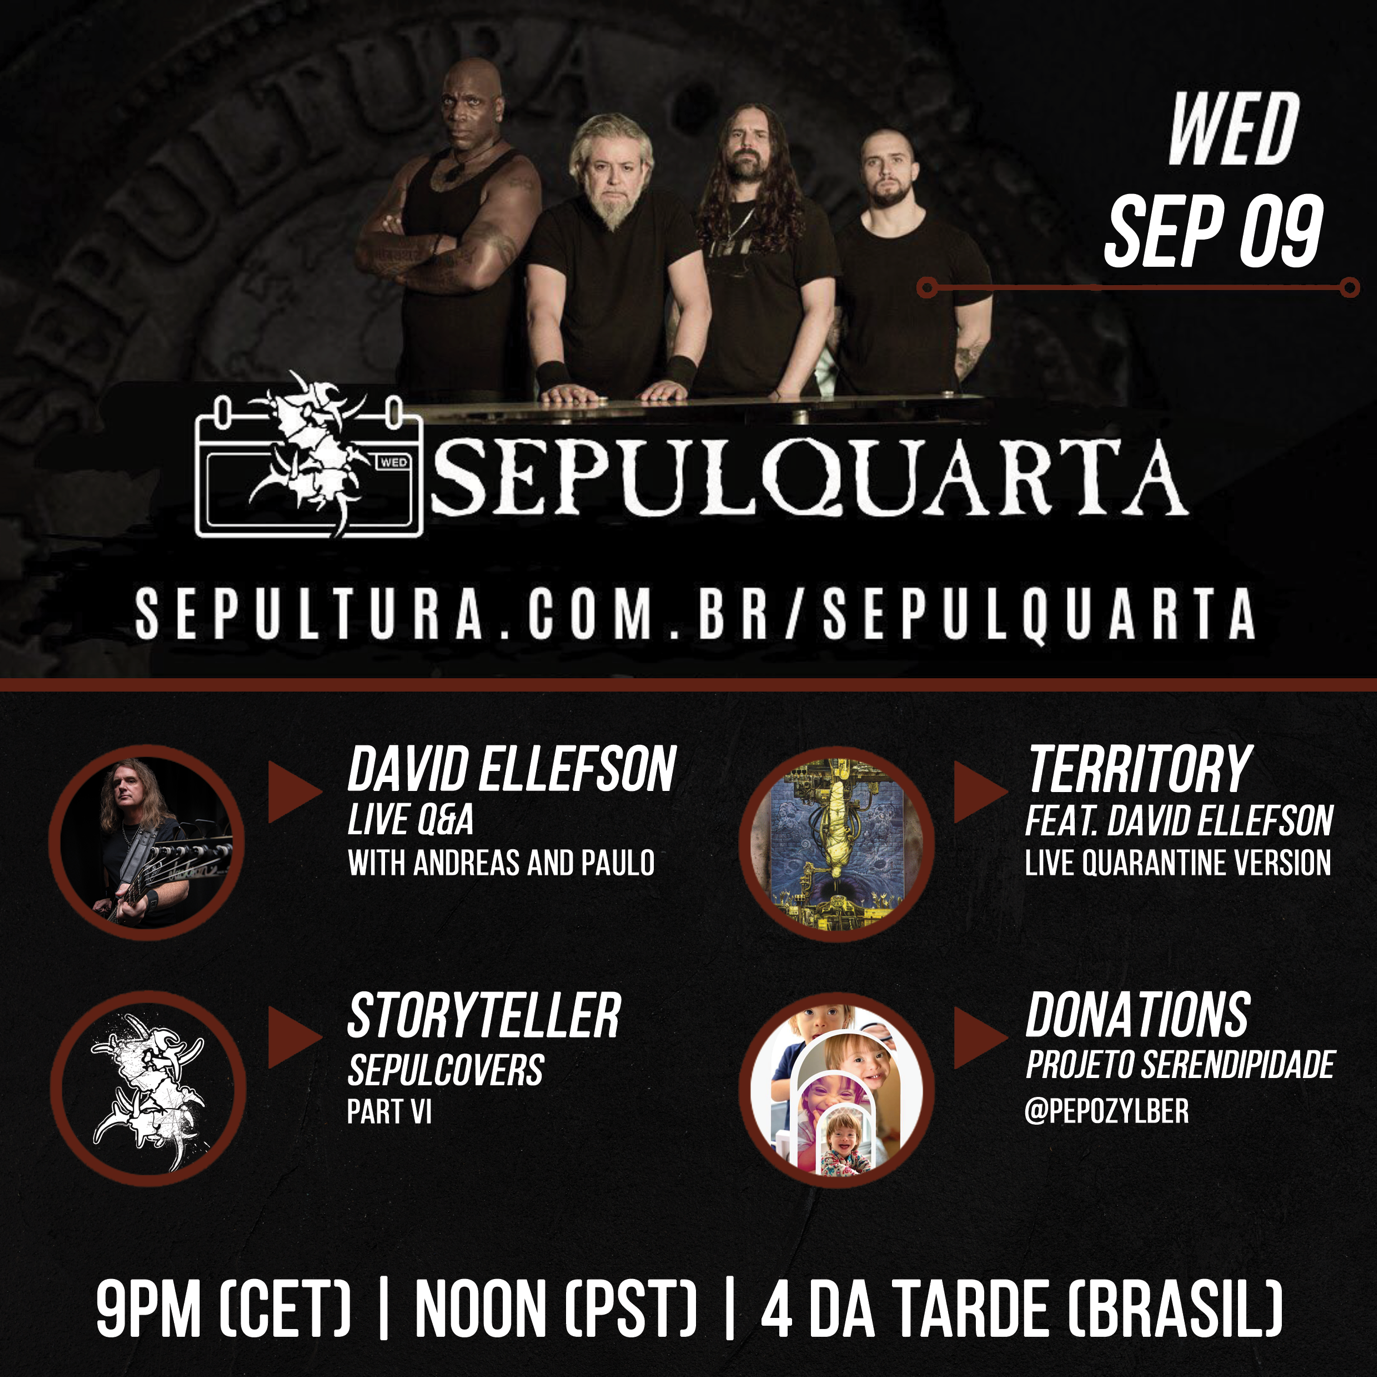 SEPULTURA Welcomes Dave Ellefson To Their SepulQuarta Sessions